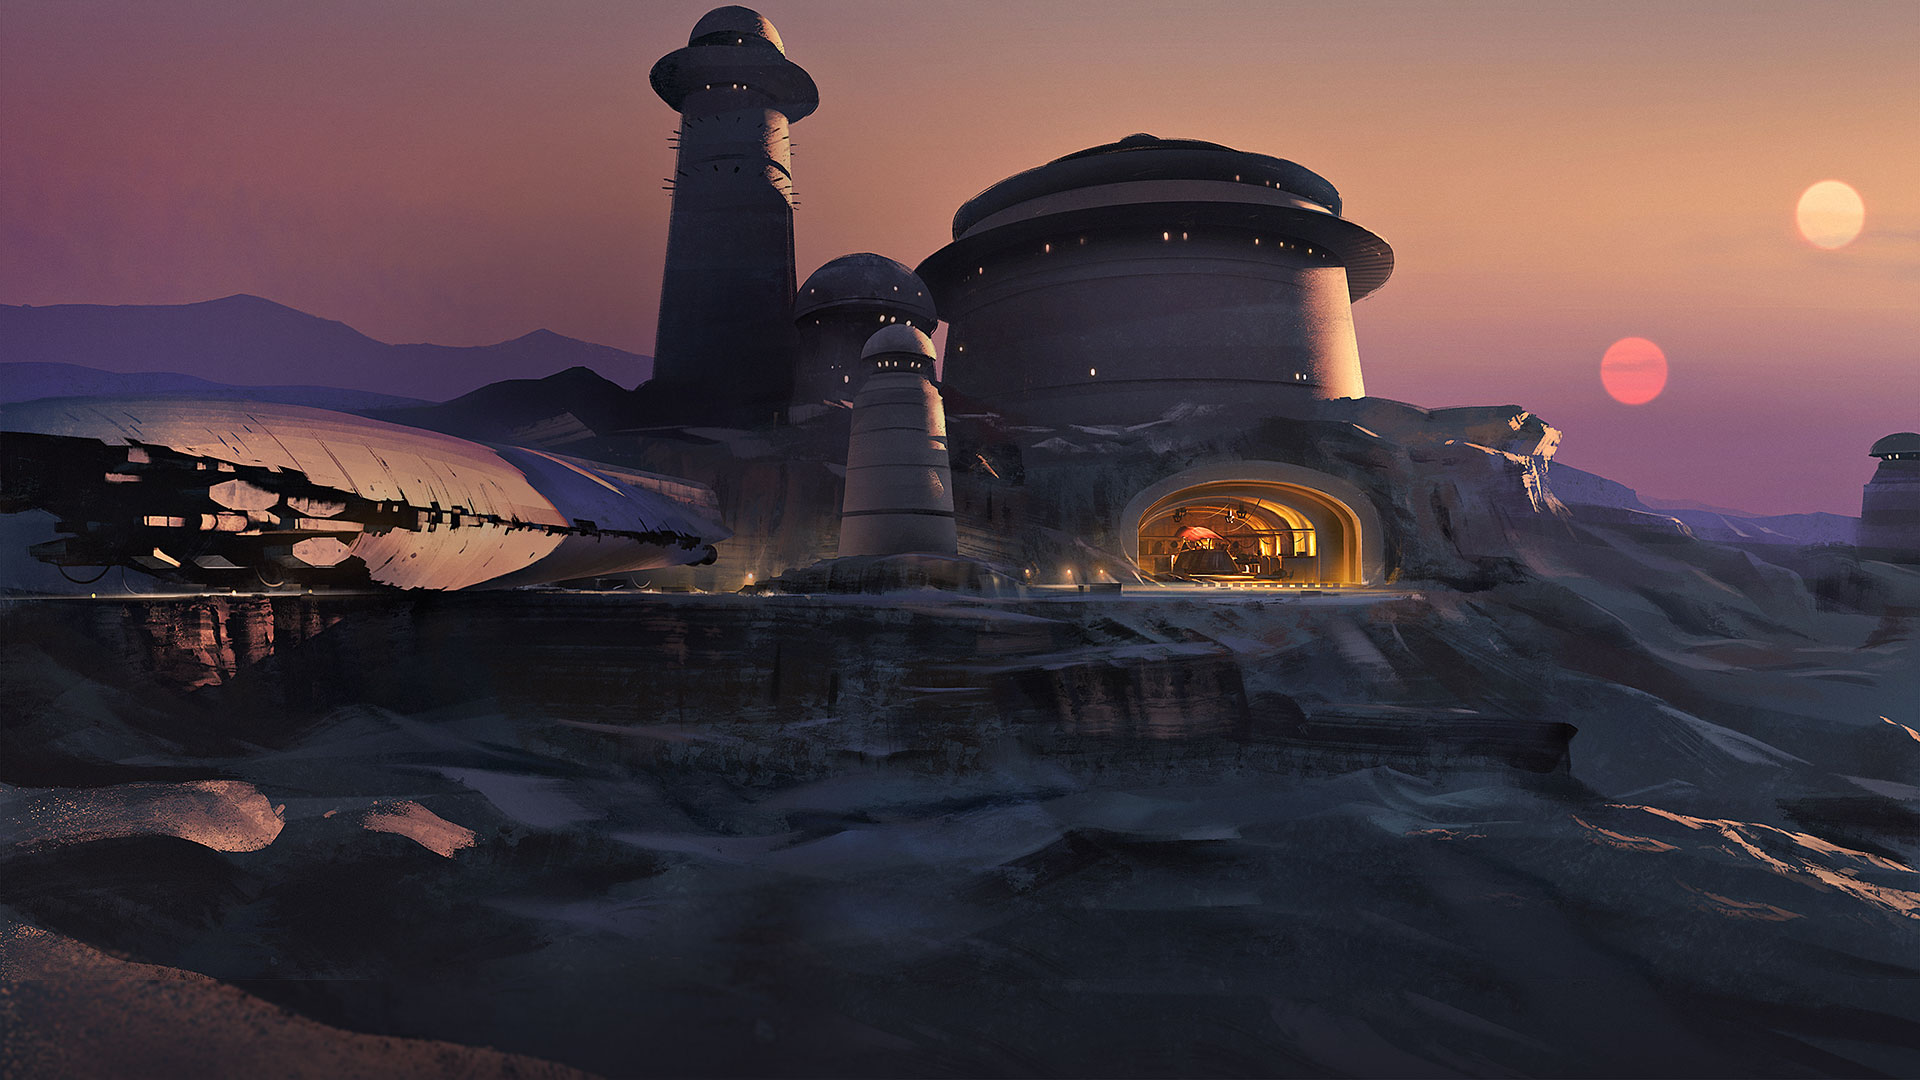 star wars battlefront: outer rim dlc full hd wallpaper and